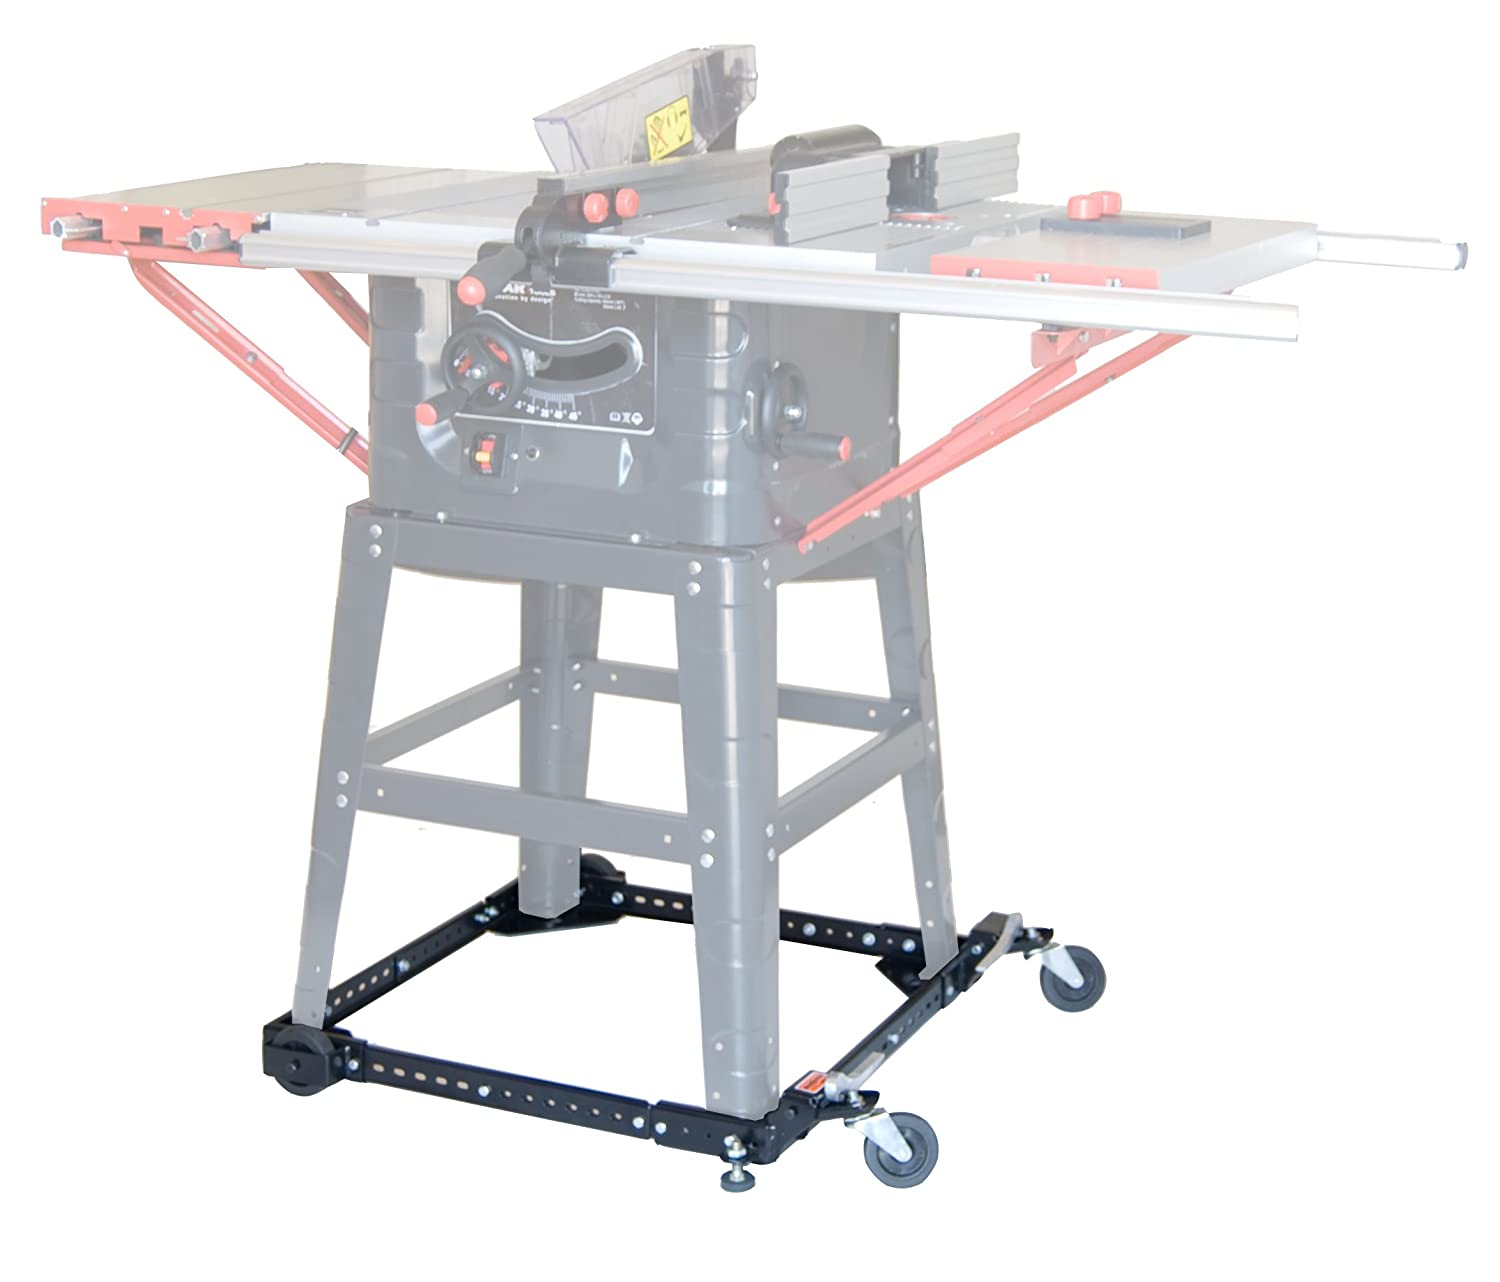 Move Your Heavy Tools and Equipment Around Your Shop with Ease and Stability. Adjustable Universal Mobile Base Portamate PM-1000